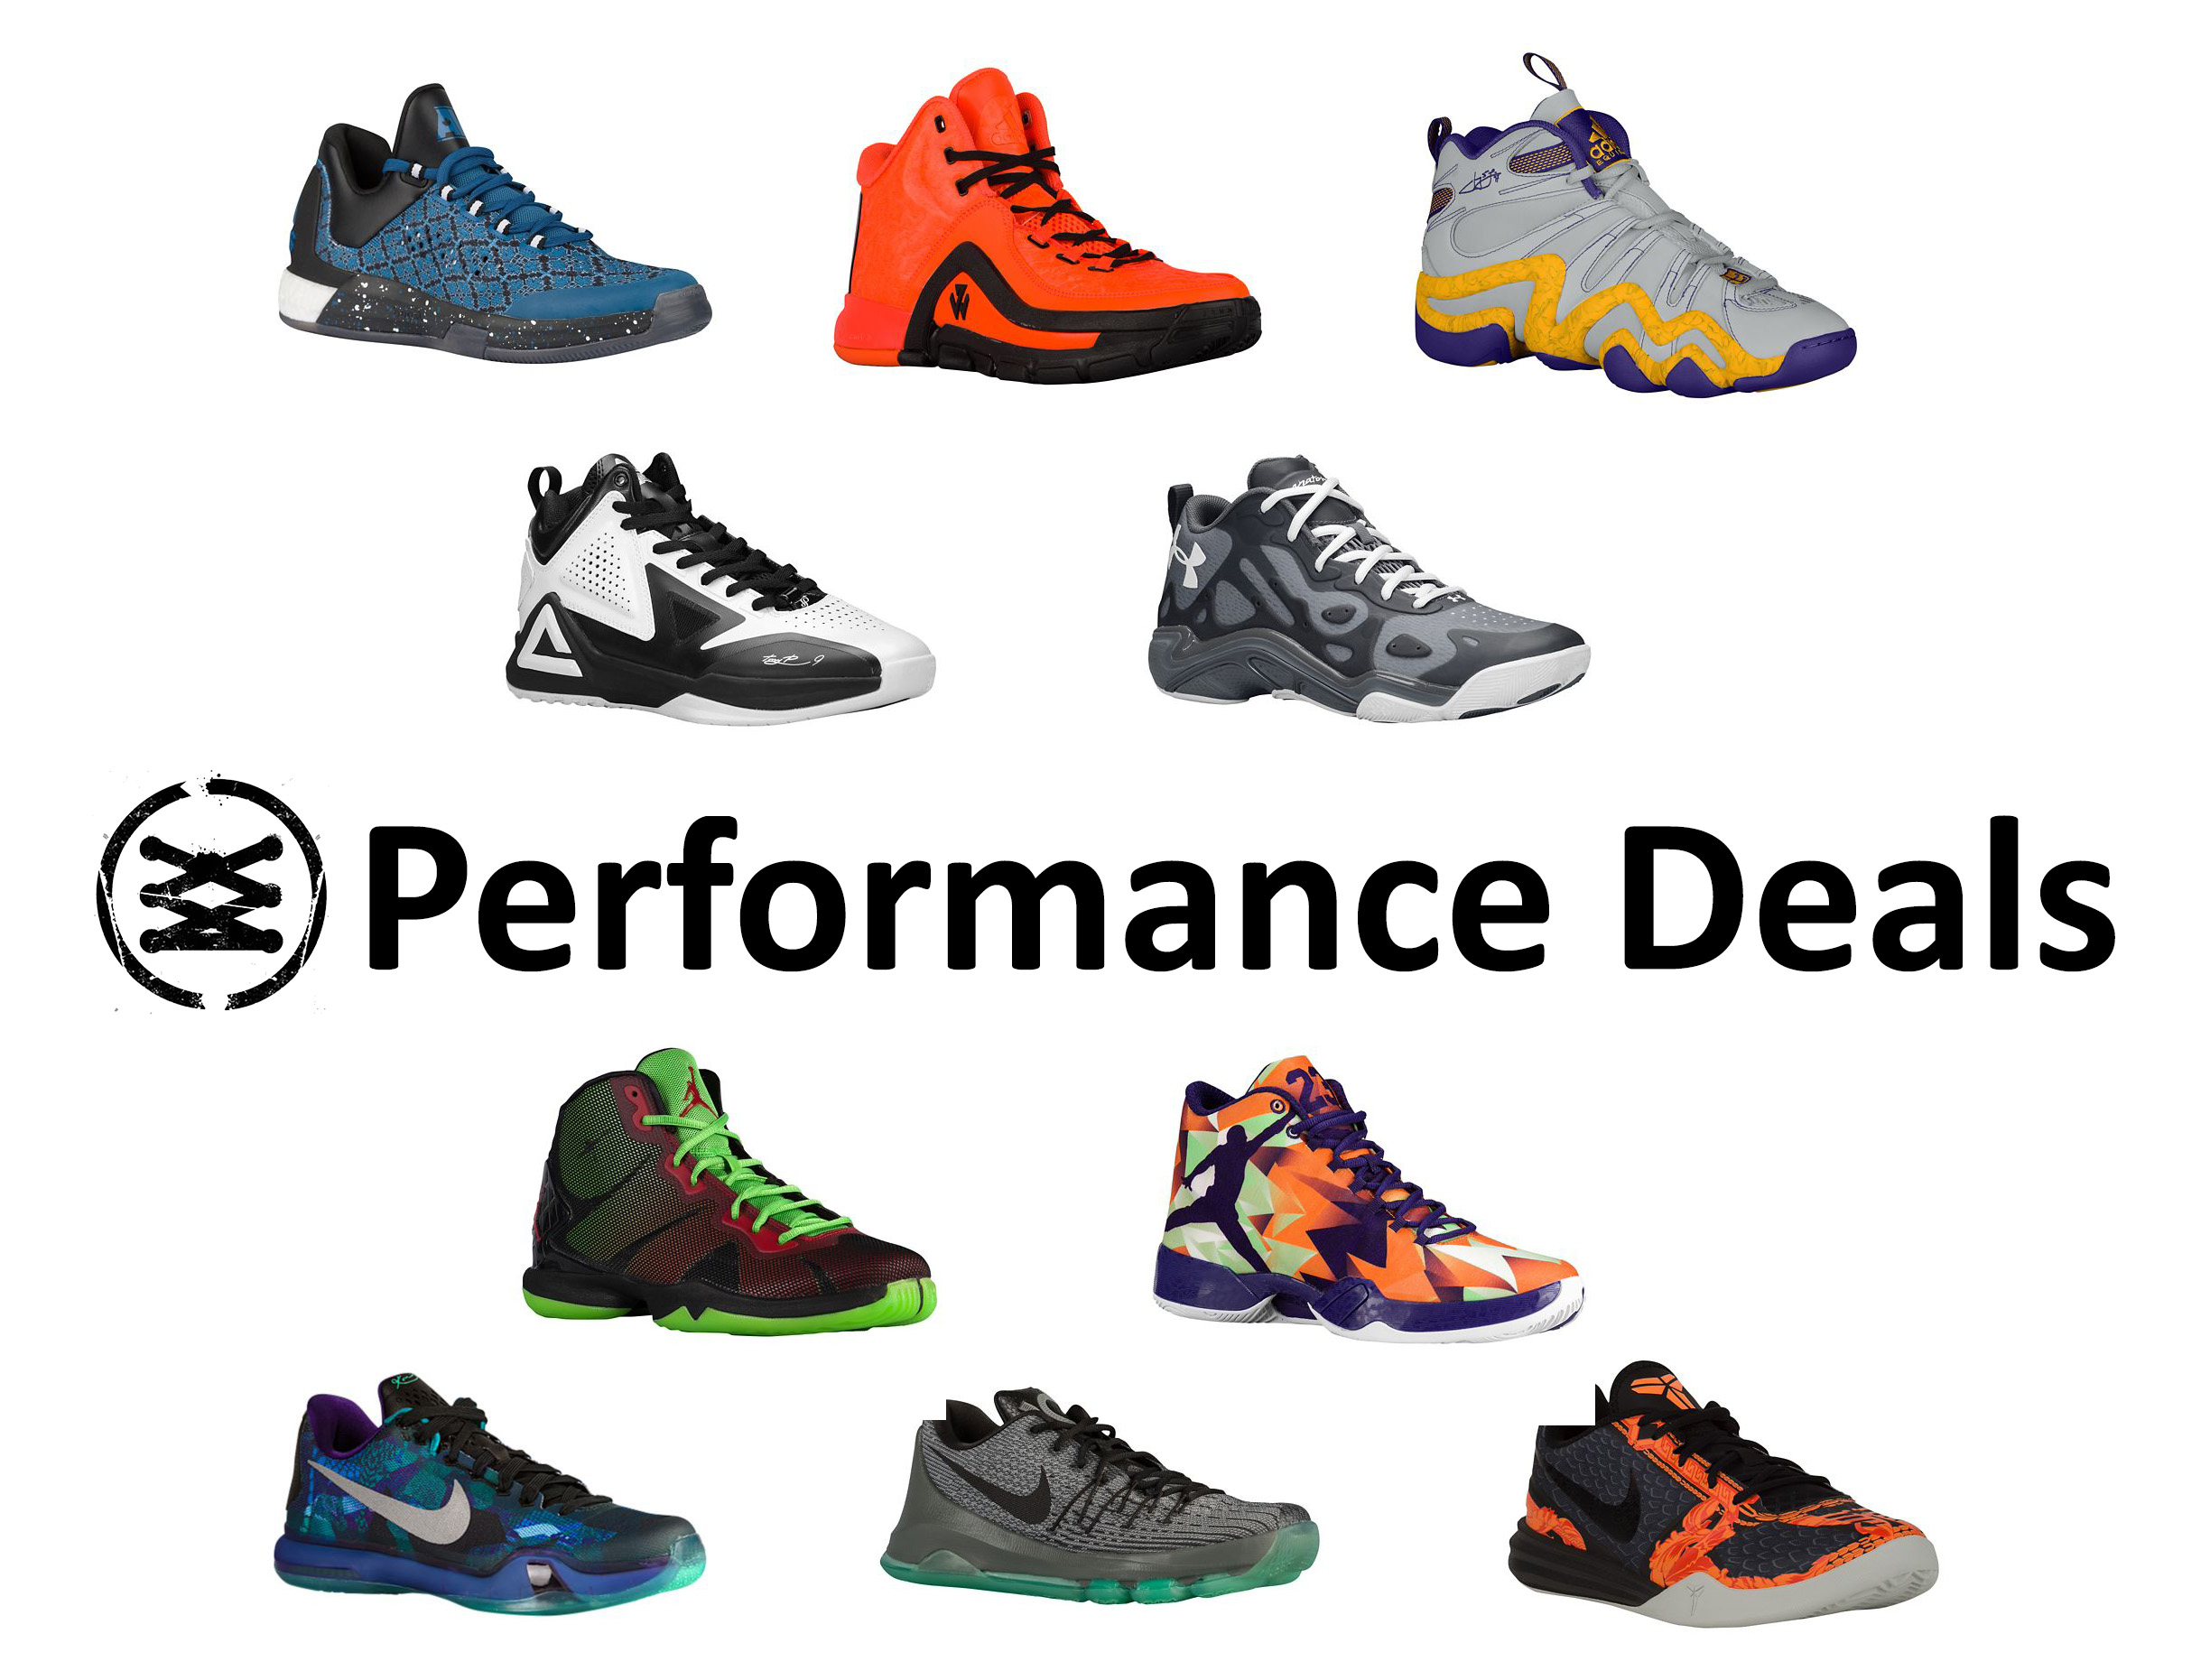 8247a2d3a8f Oct11. Performance Deals 20 Off Basketball Shoes At Eastbay Weartesters  Source. On shoes eastbay eastbay air jordan restock august 2016 sneaker bar  detroit ...